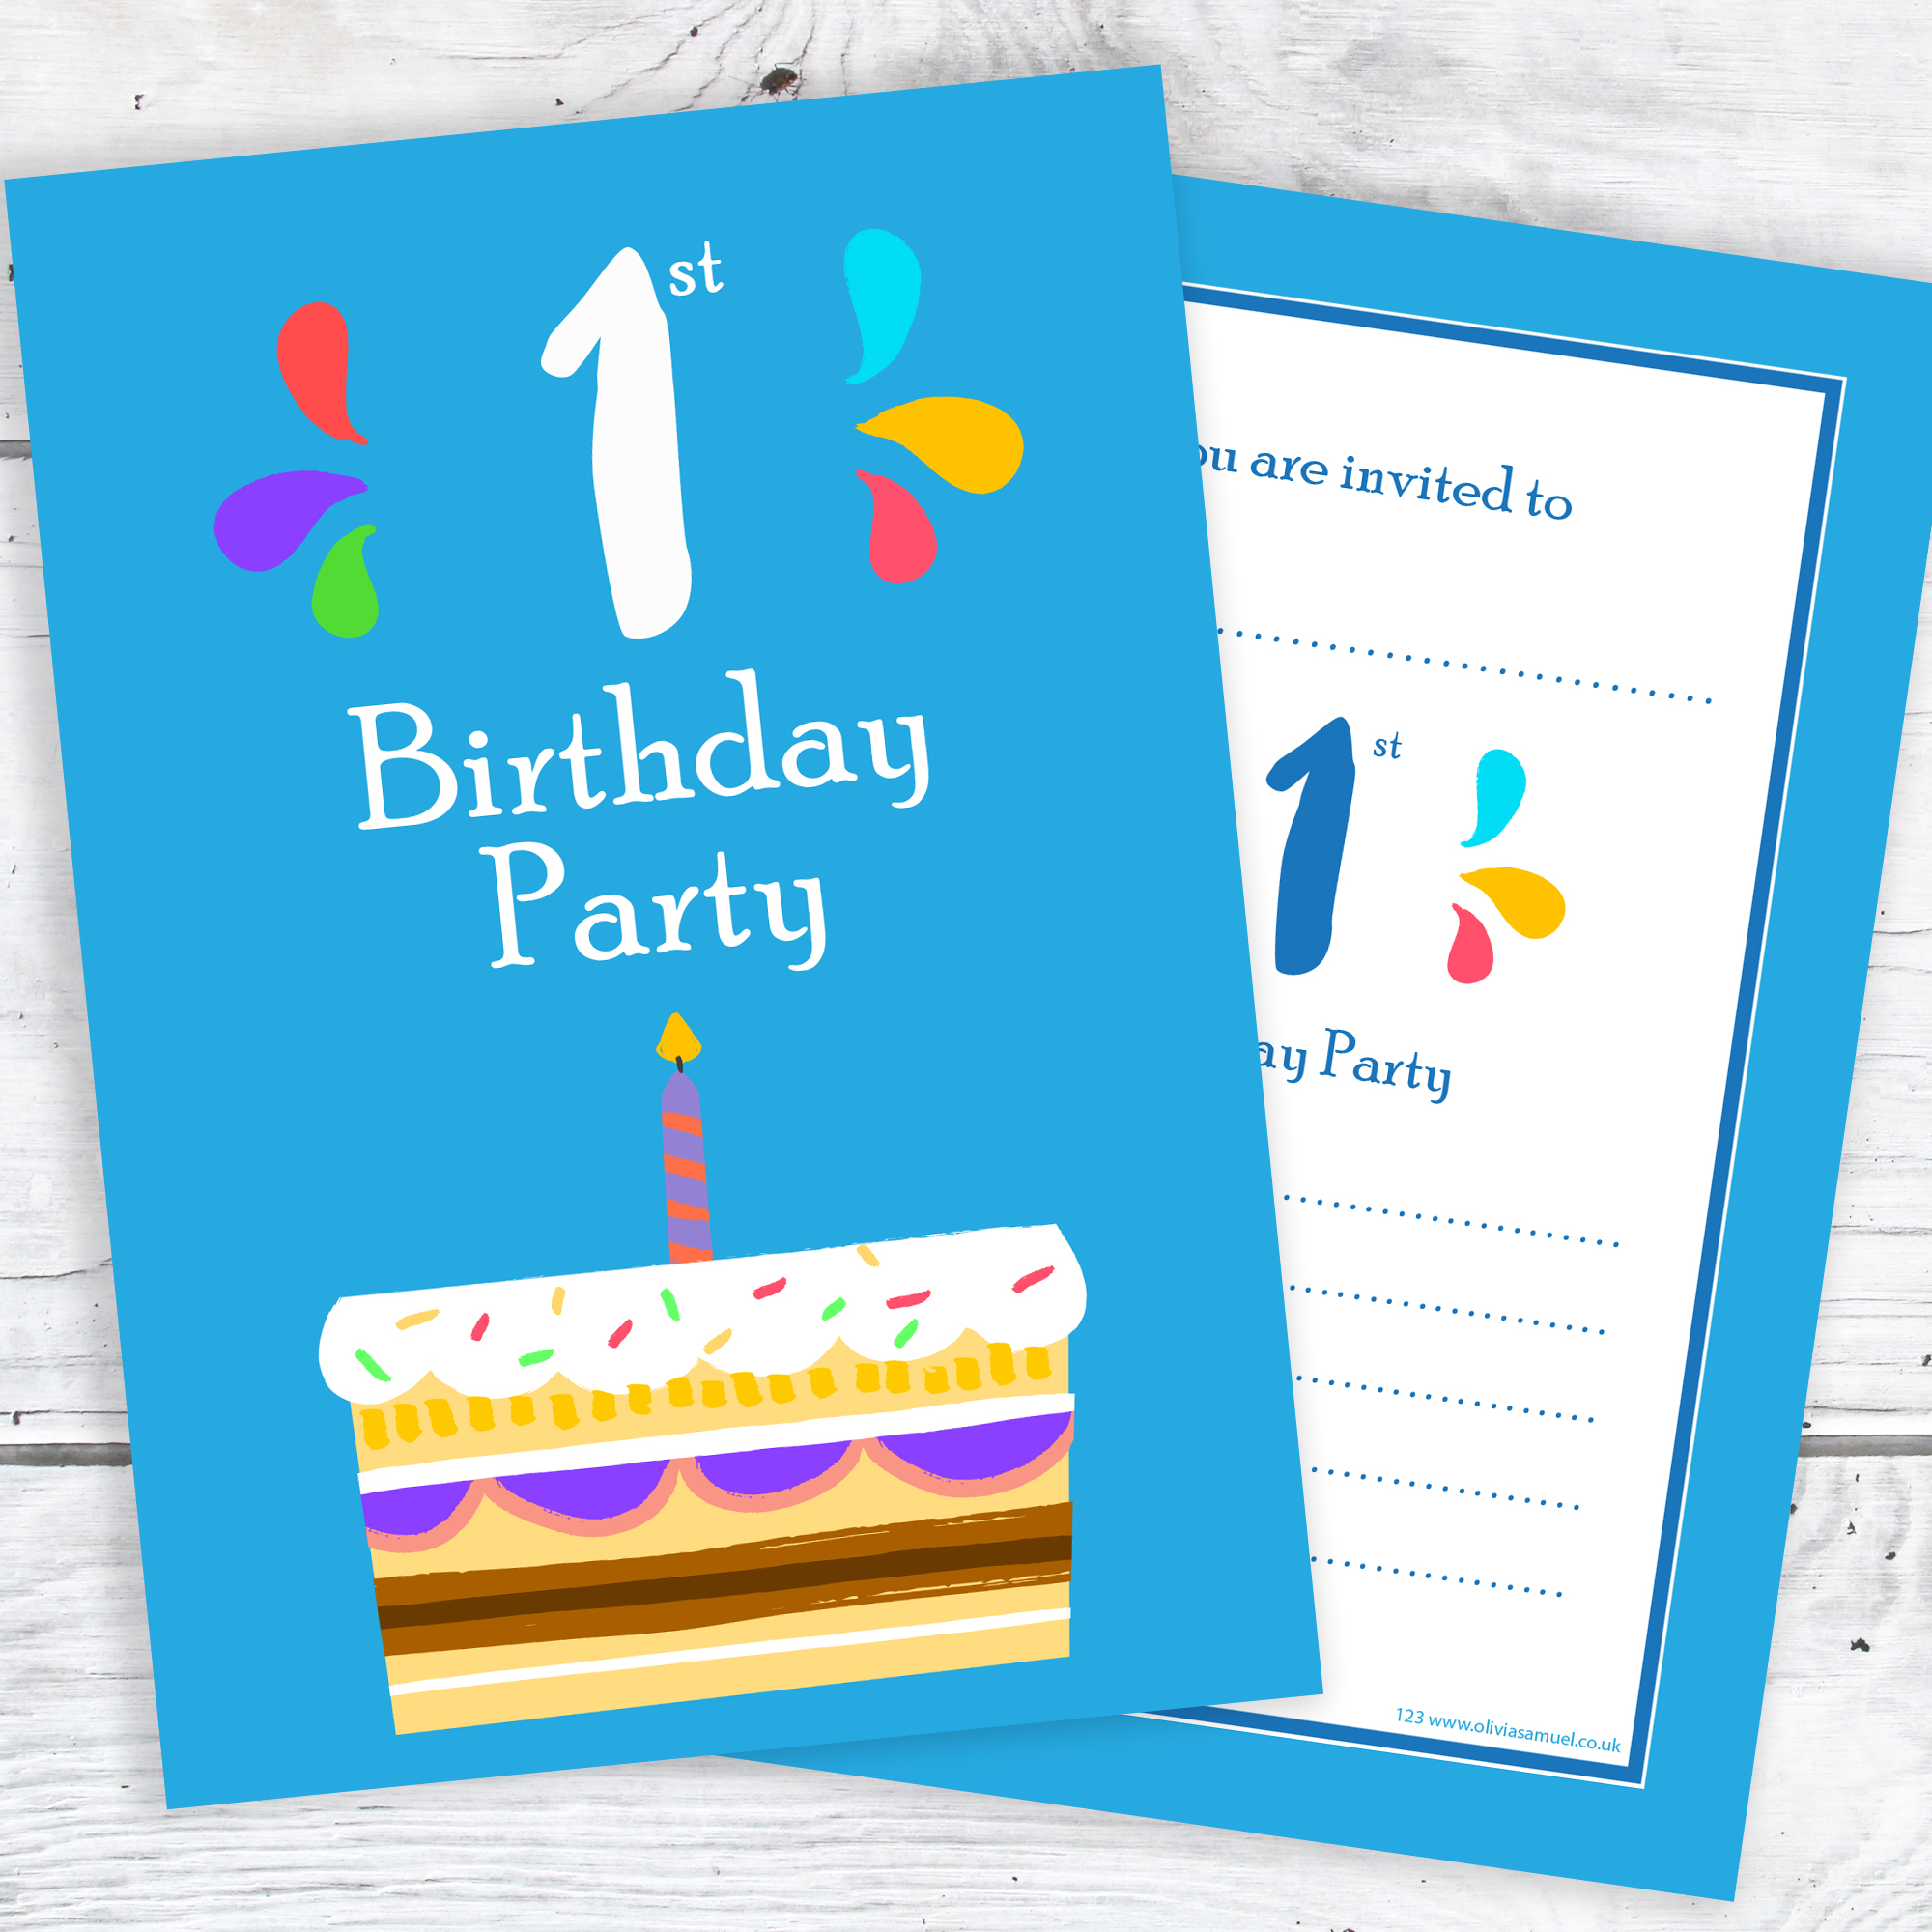 Stupendous 1St Birthday Party Invitations Blue Cake Design With Envelopes Funny Birthday Cards Online Alyptdamsfinfo